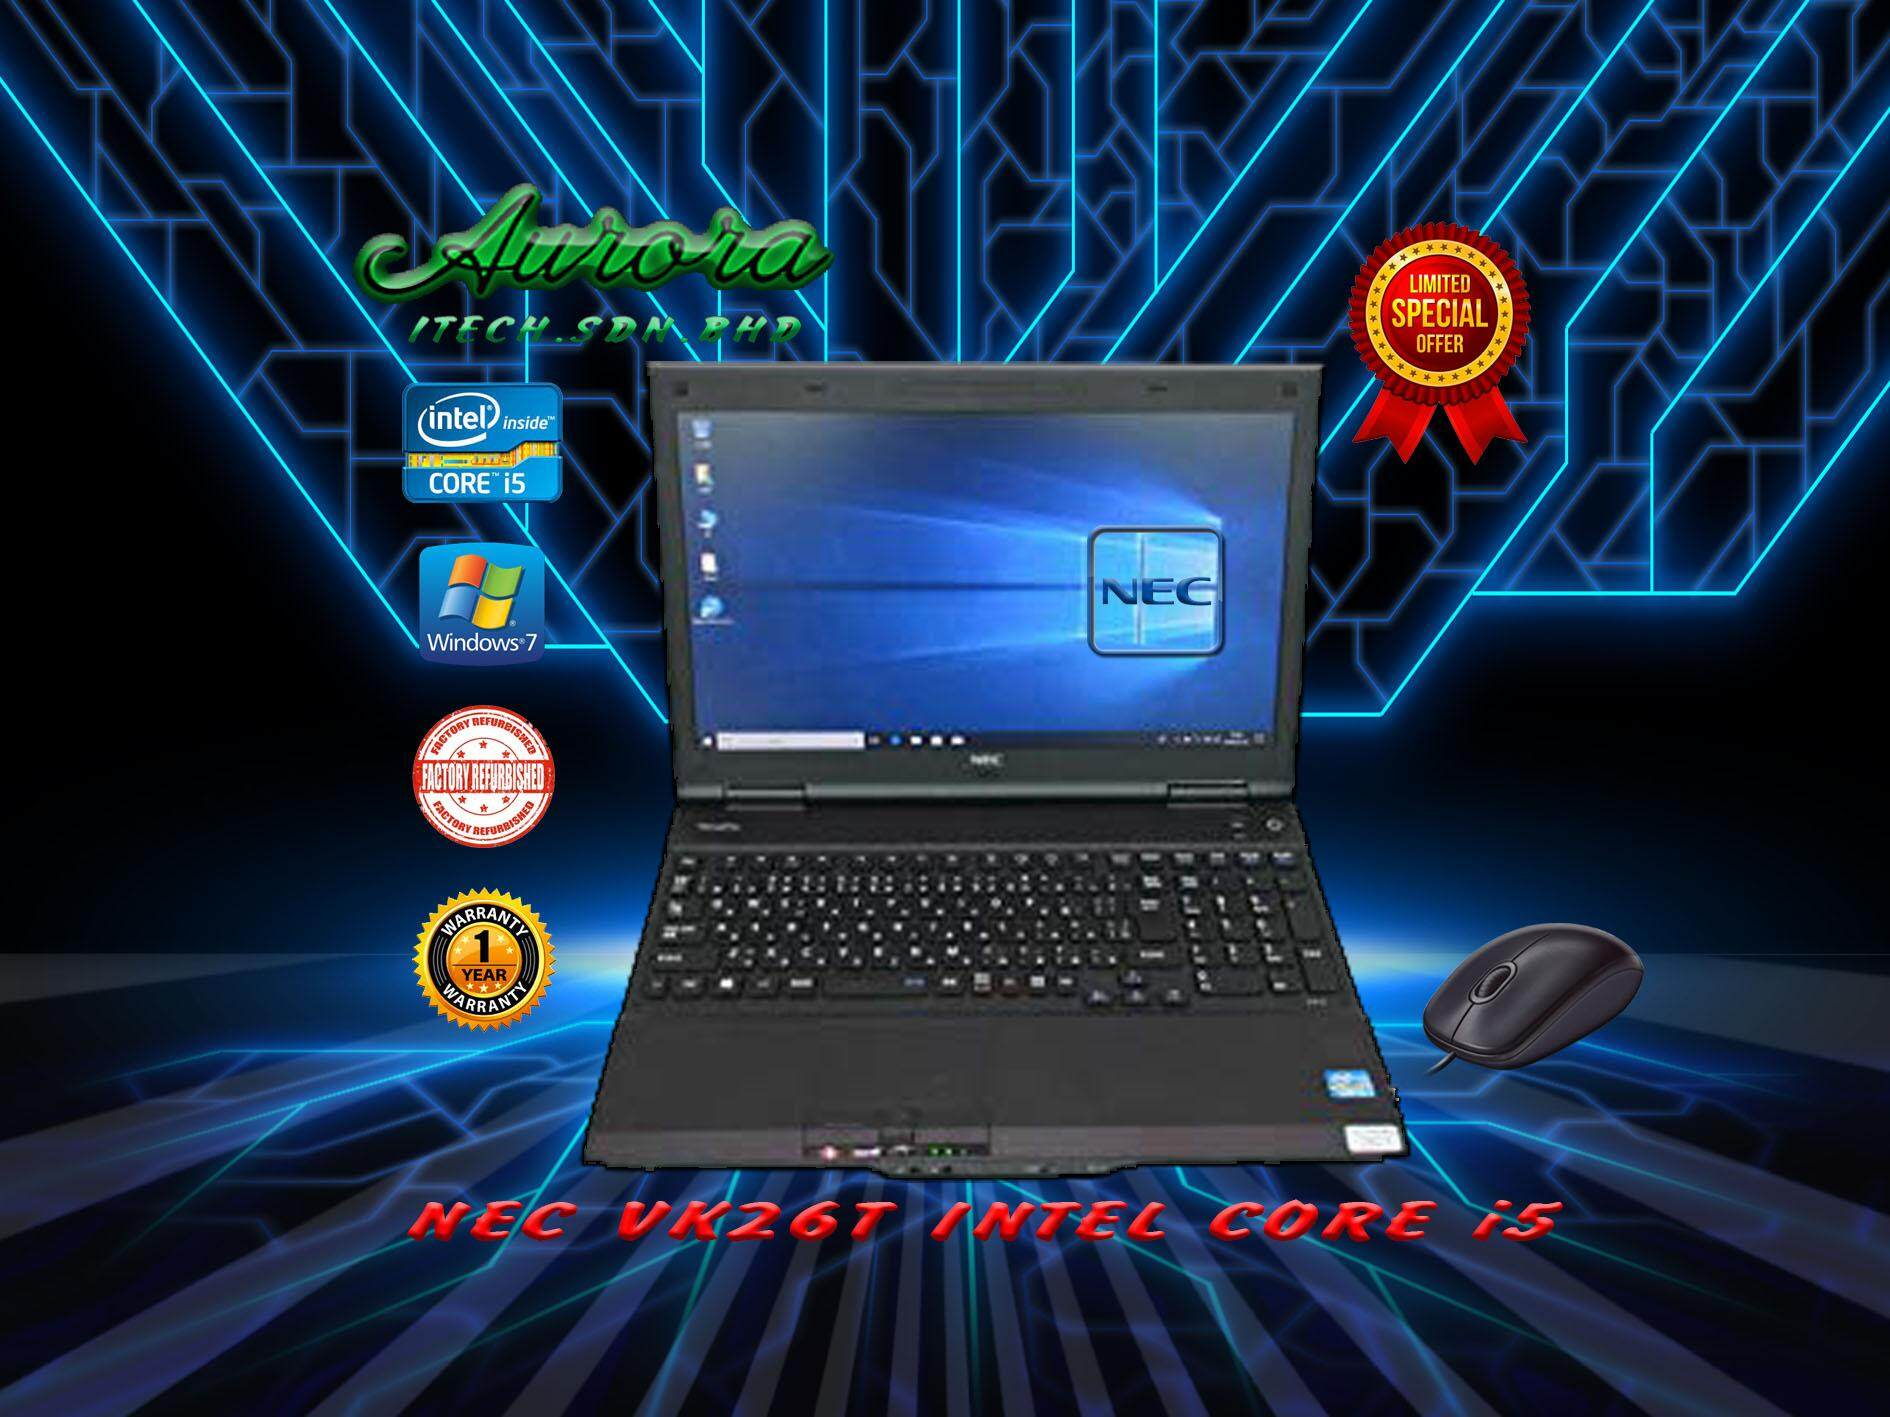 (REFURBISHED)NEC VersaPro VK26T / Intel® Core™ i5-3320M processor / 4 GB DDR3 RAM / 128 GB SATA SSD / 15.6- INCH LCD / 1 YearWarranty,Free Mouse Malaysia